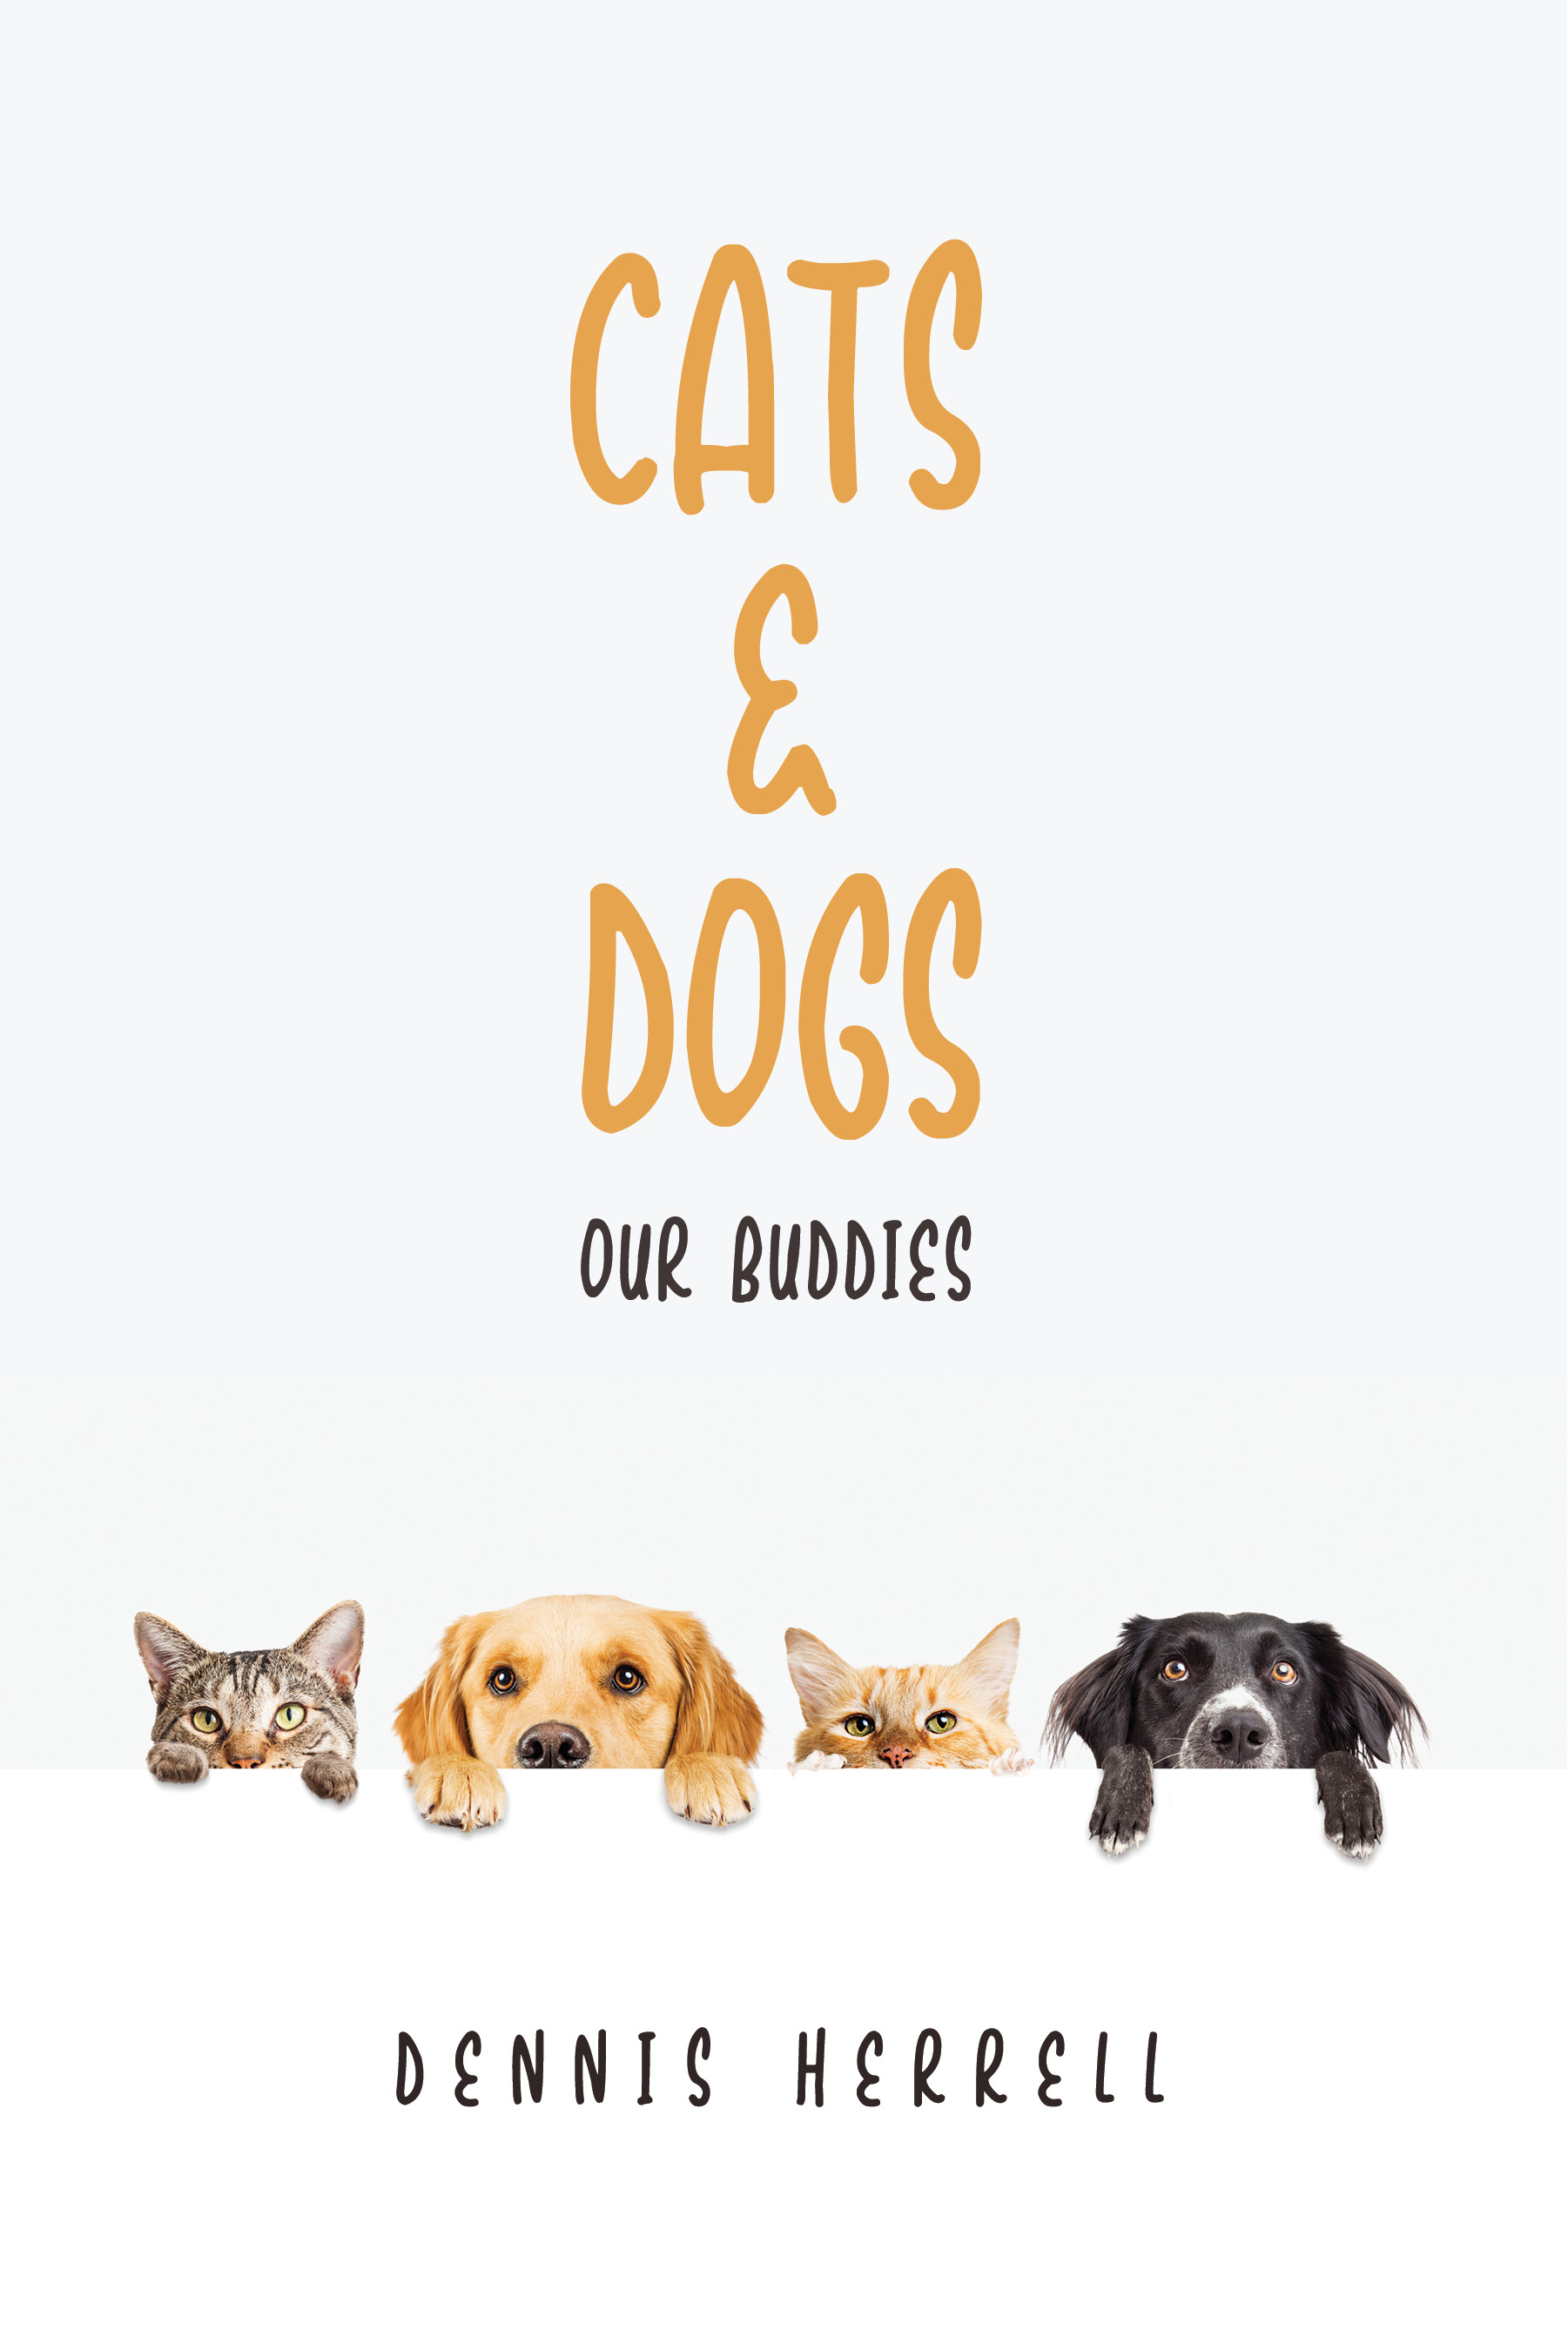 Cats & Dogs, an Ebook by Dennis Herrell